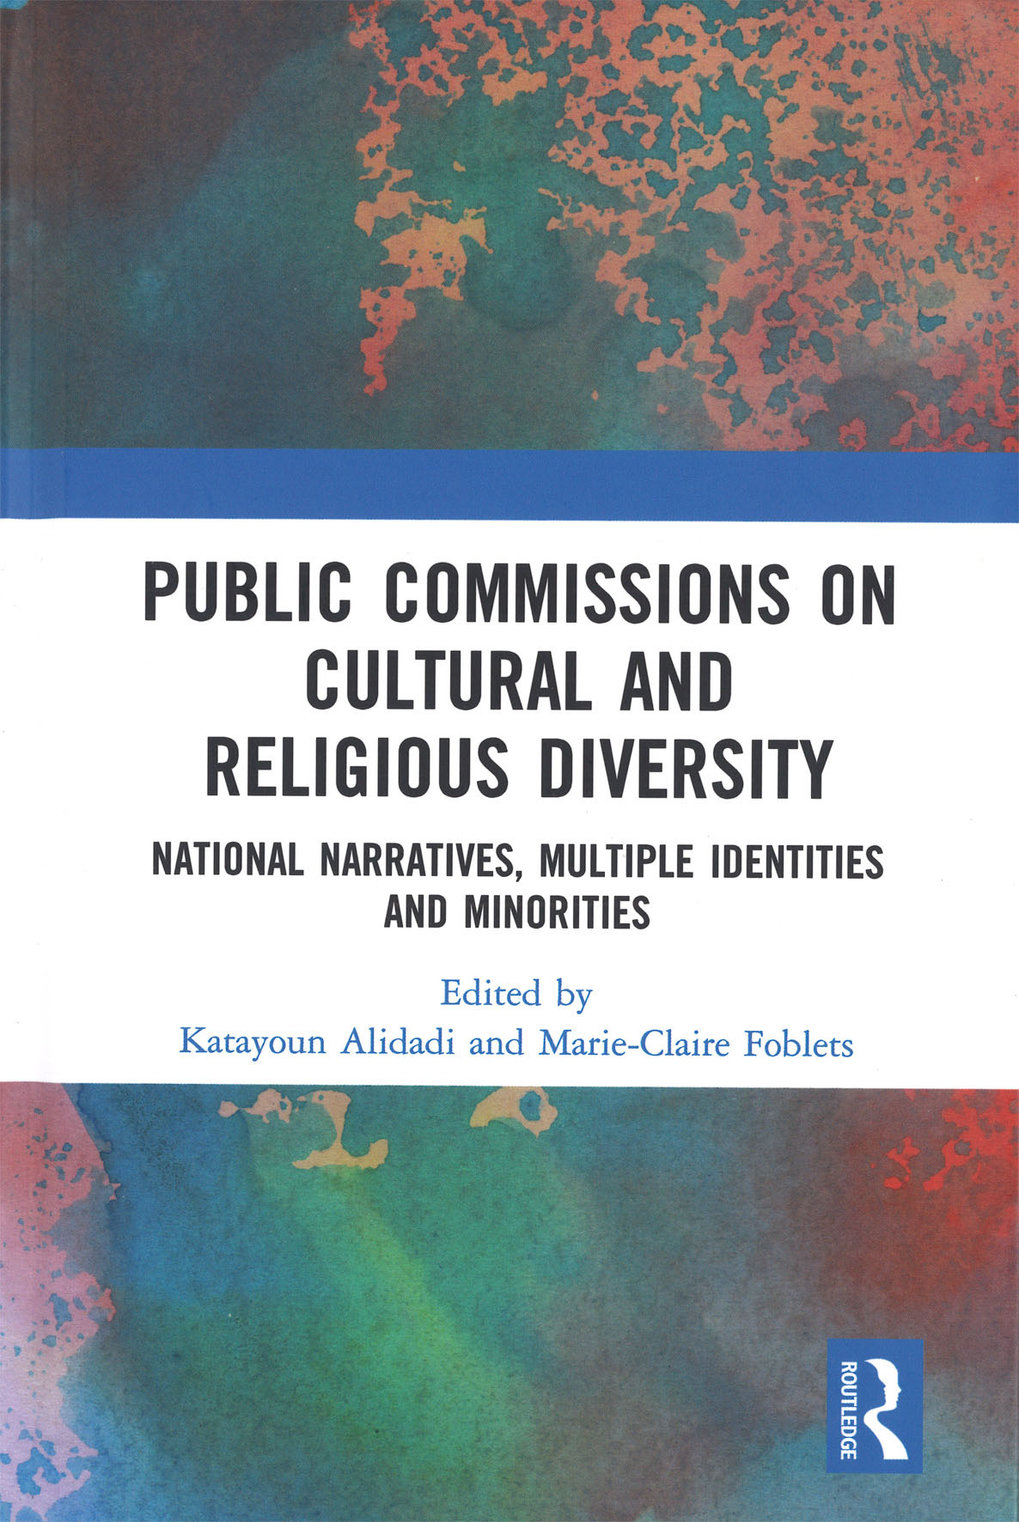 <strong>Public commissions on cultural and religious diversity: national narratives, multiple identities and minorities</strong>